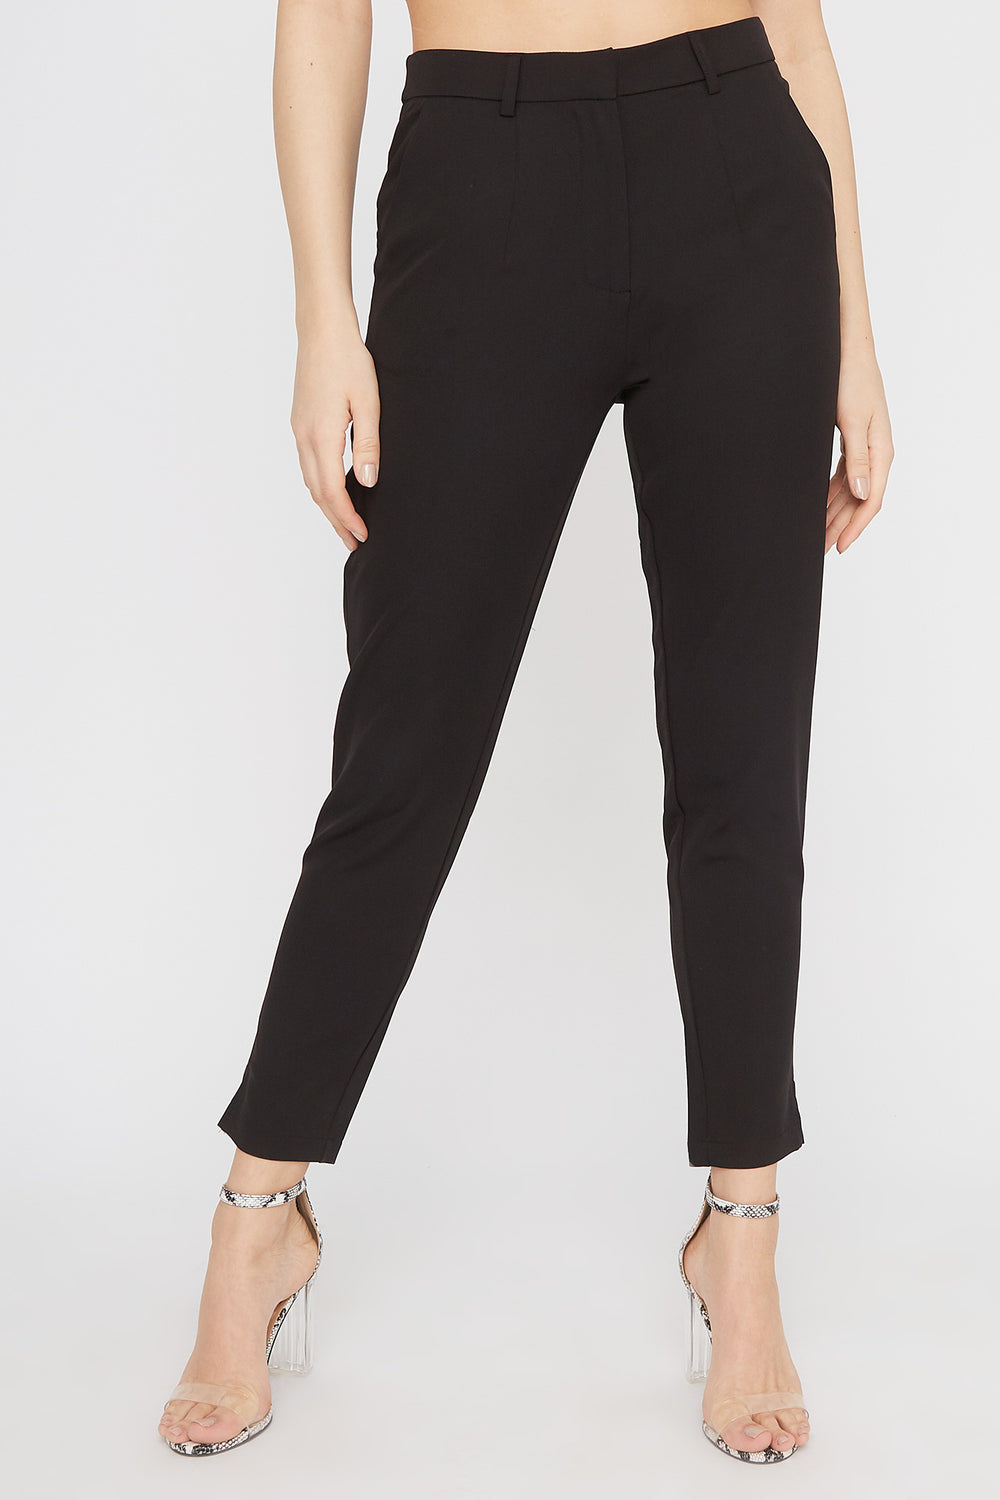 High-Rise Tapered Pant Black